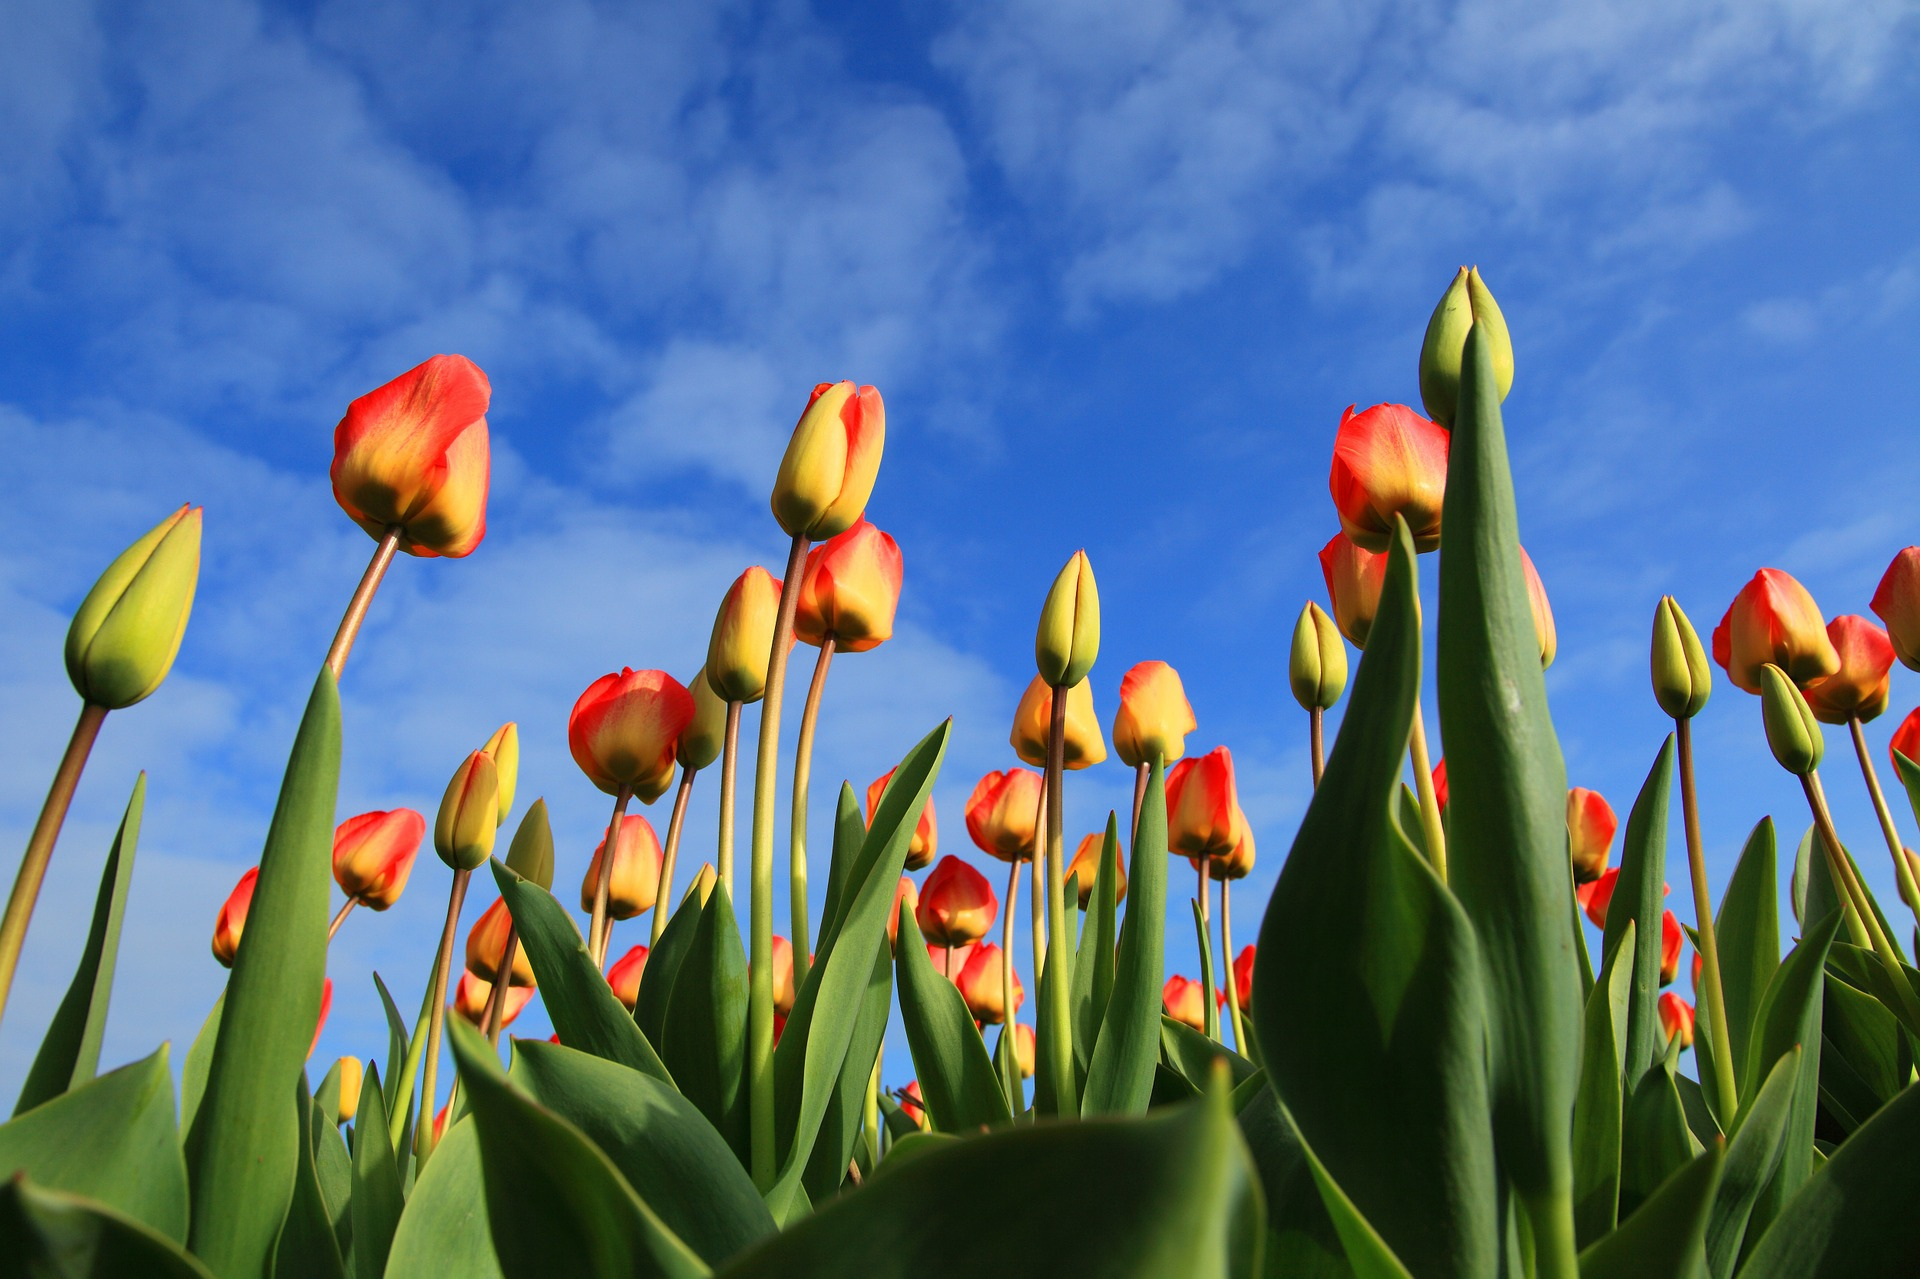 A Few Valuable Tips on Planting Tulips